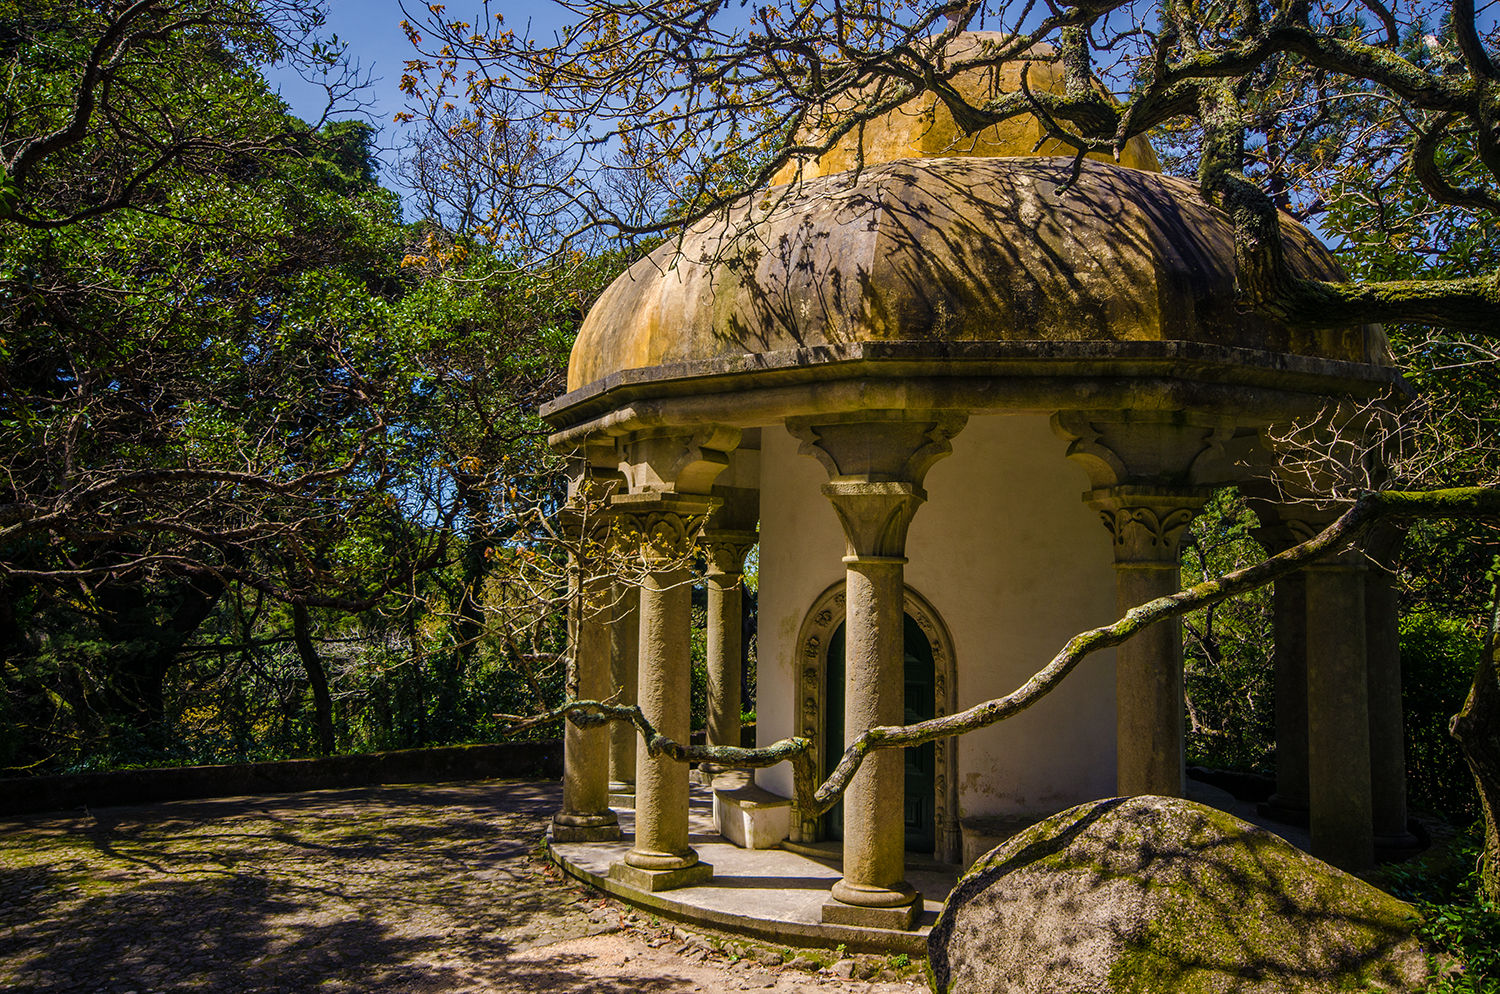 Sintra sightseeing with Sintra Photo Tour - Pena Park